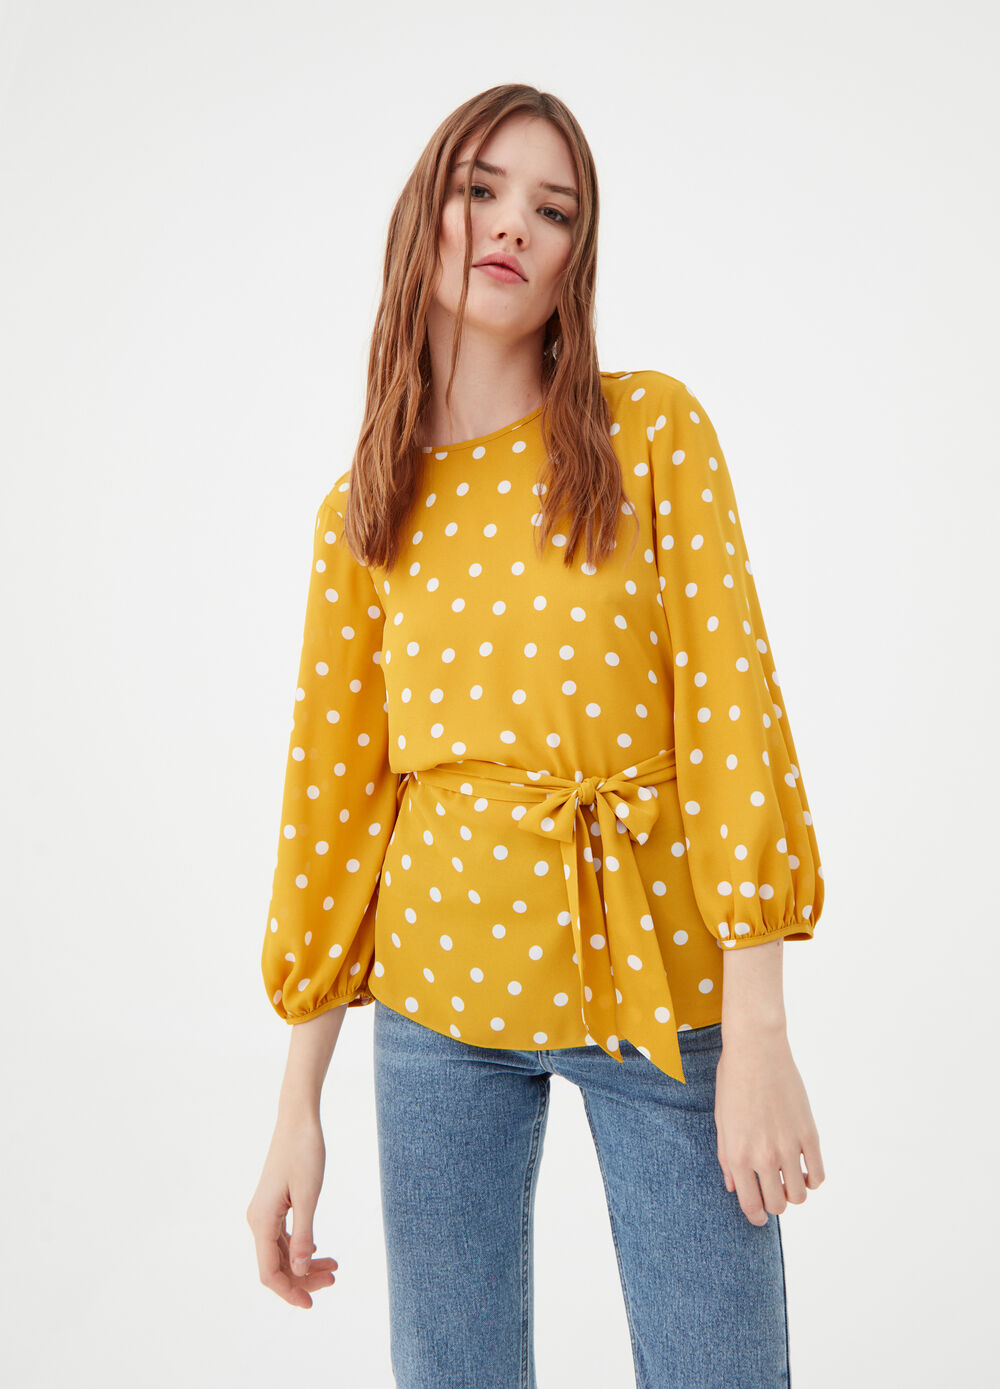 Blouse with wide sleeves and polka dot print